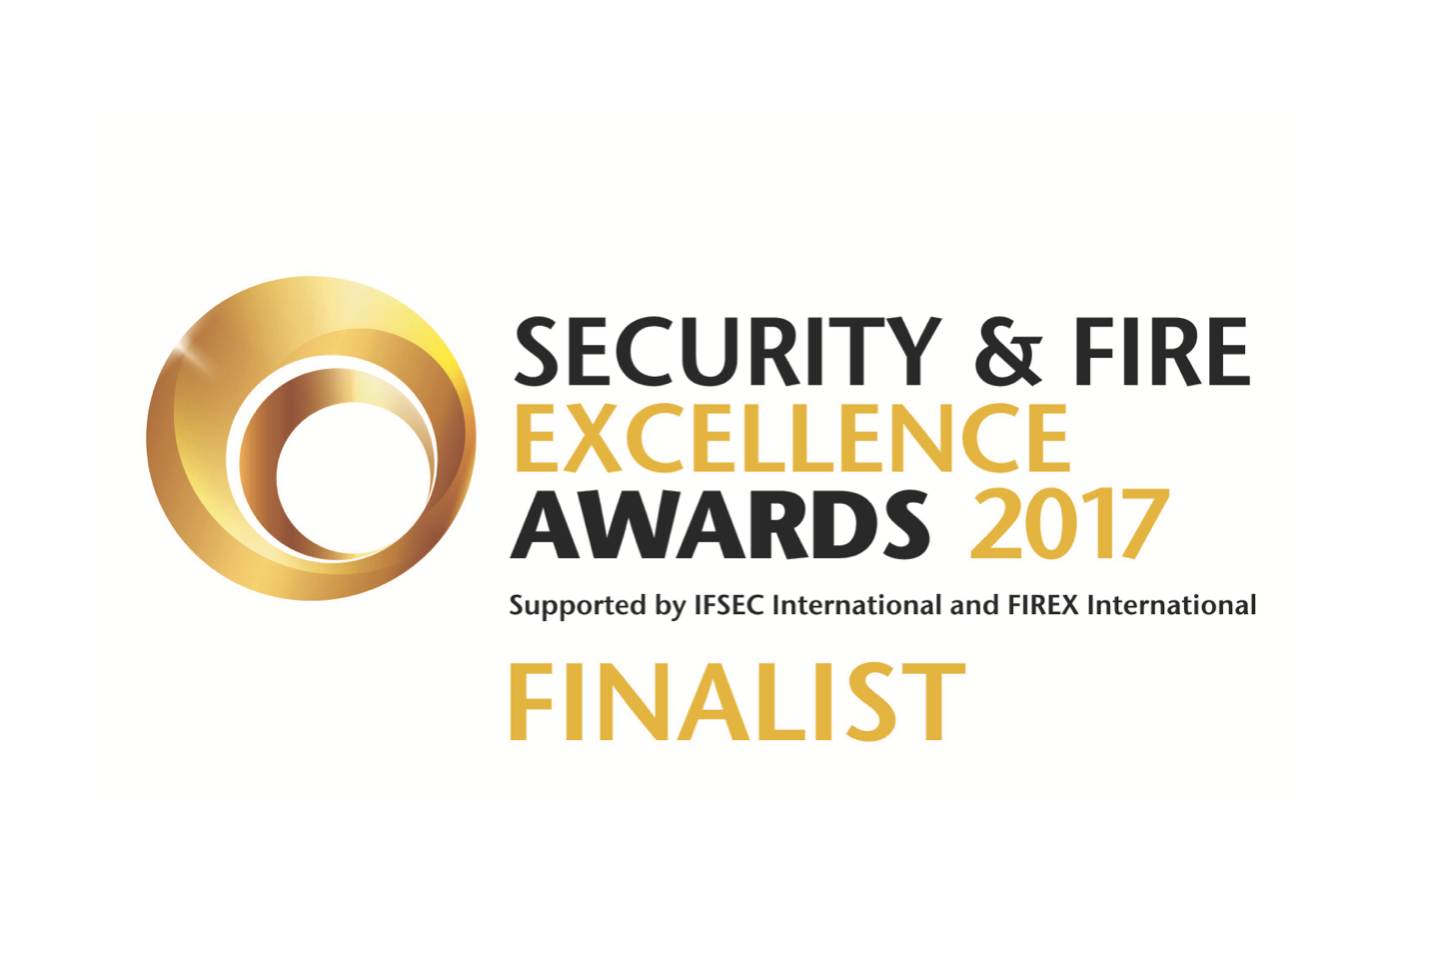 2017 Security & Fire Excellence Awards Finalists